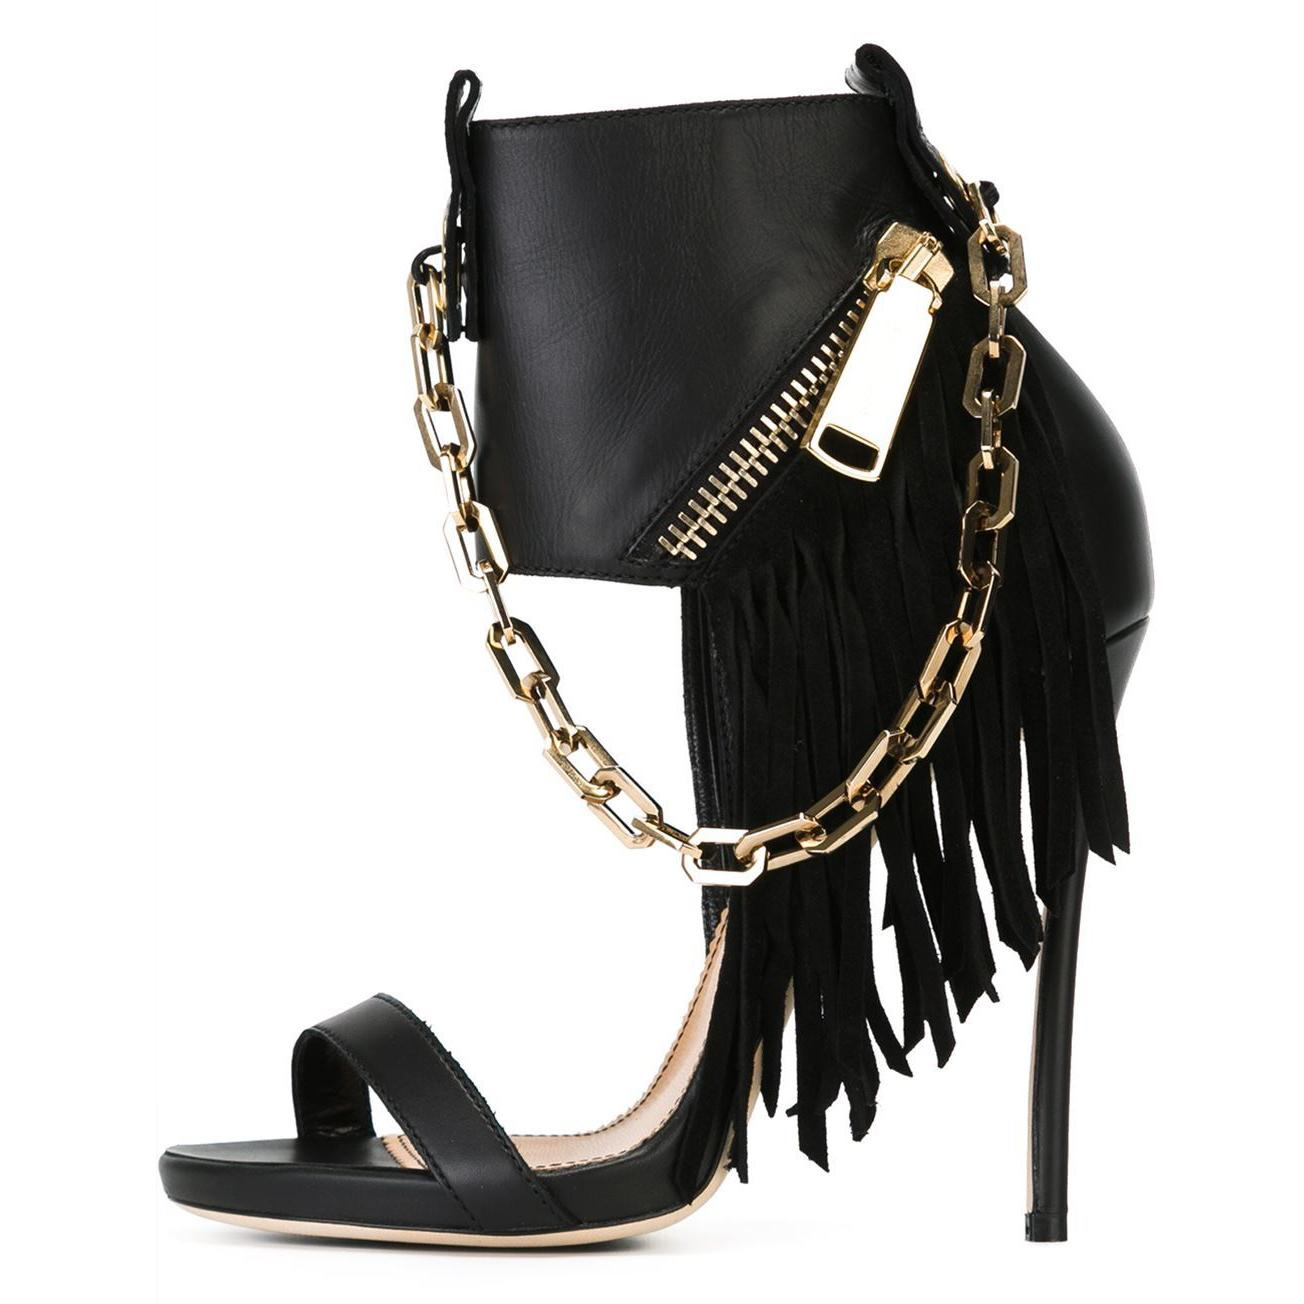 5d28a12f6d2d 2017 Fashion New Style Summer Sexy Fringed High Heels Casual Roman Gladiator  Sandals Chains Shoes For Woman Tassels Stilettos Fashion Shoes Shoes For  Sale ...